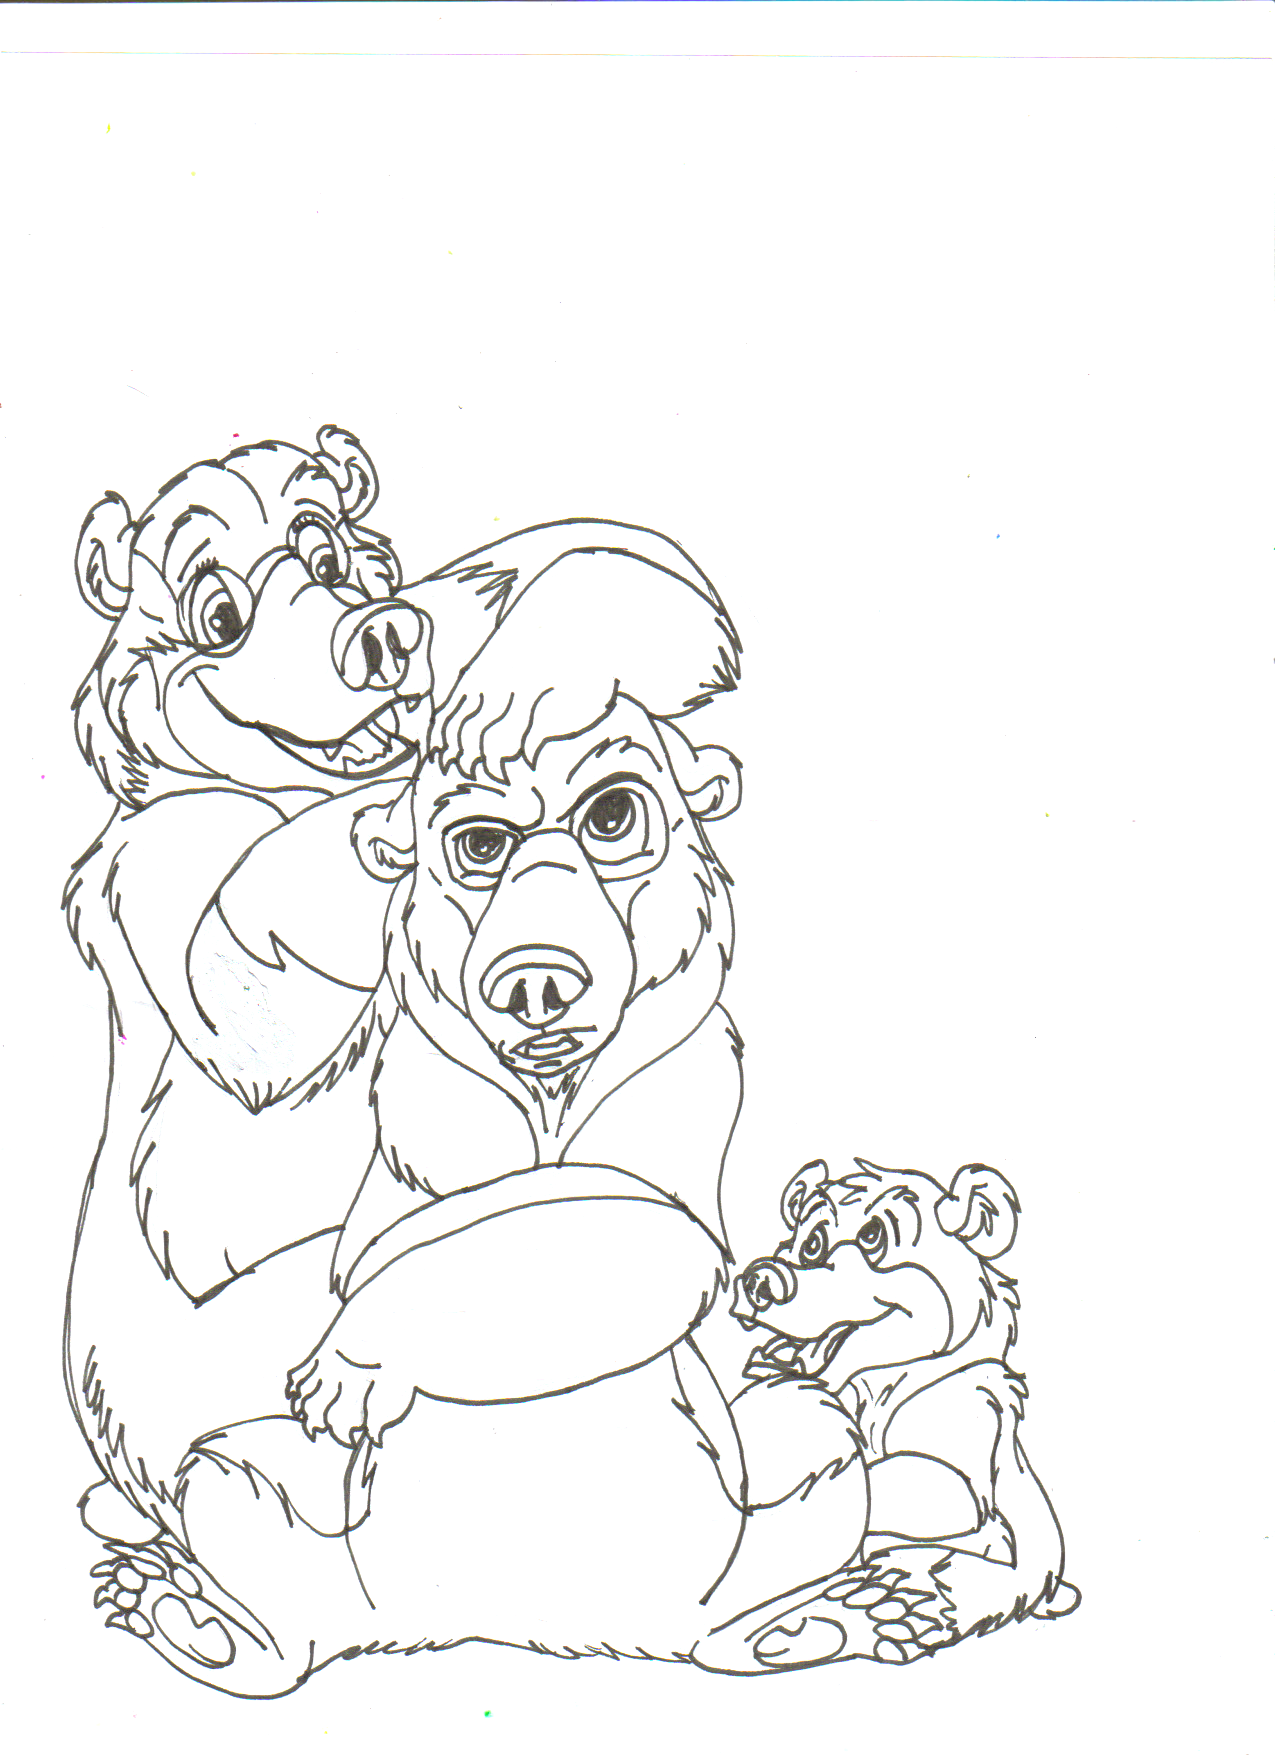 Me, Kenai, and Koda WIP by hawaiifan